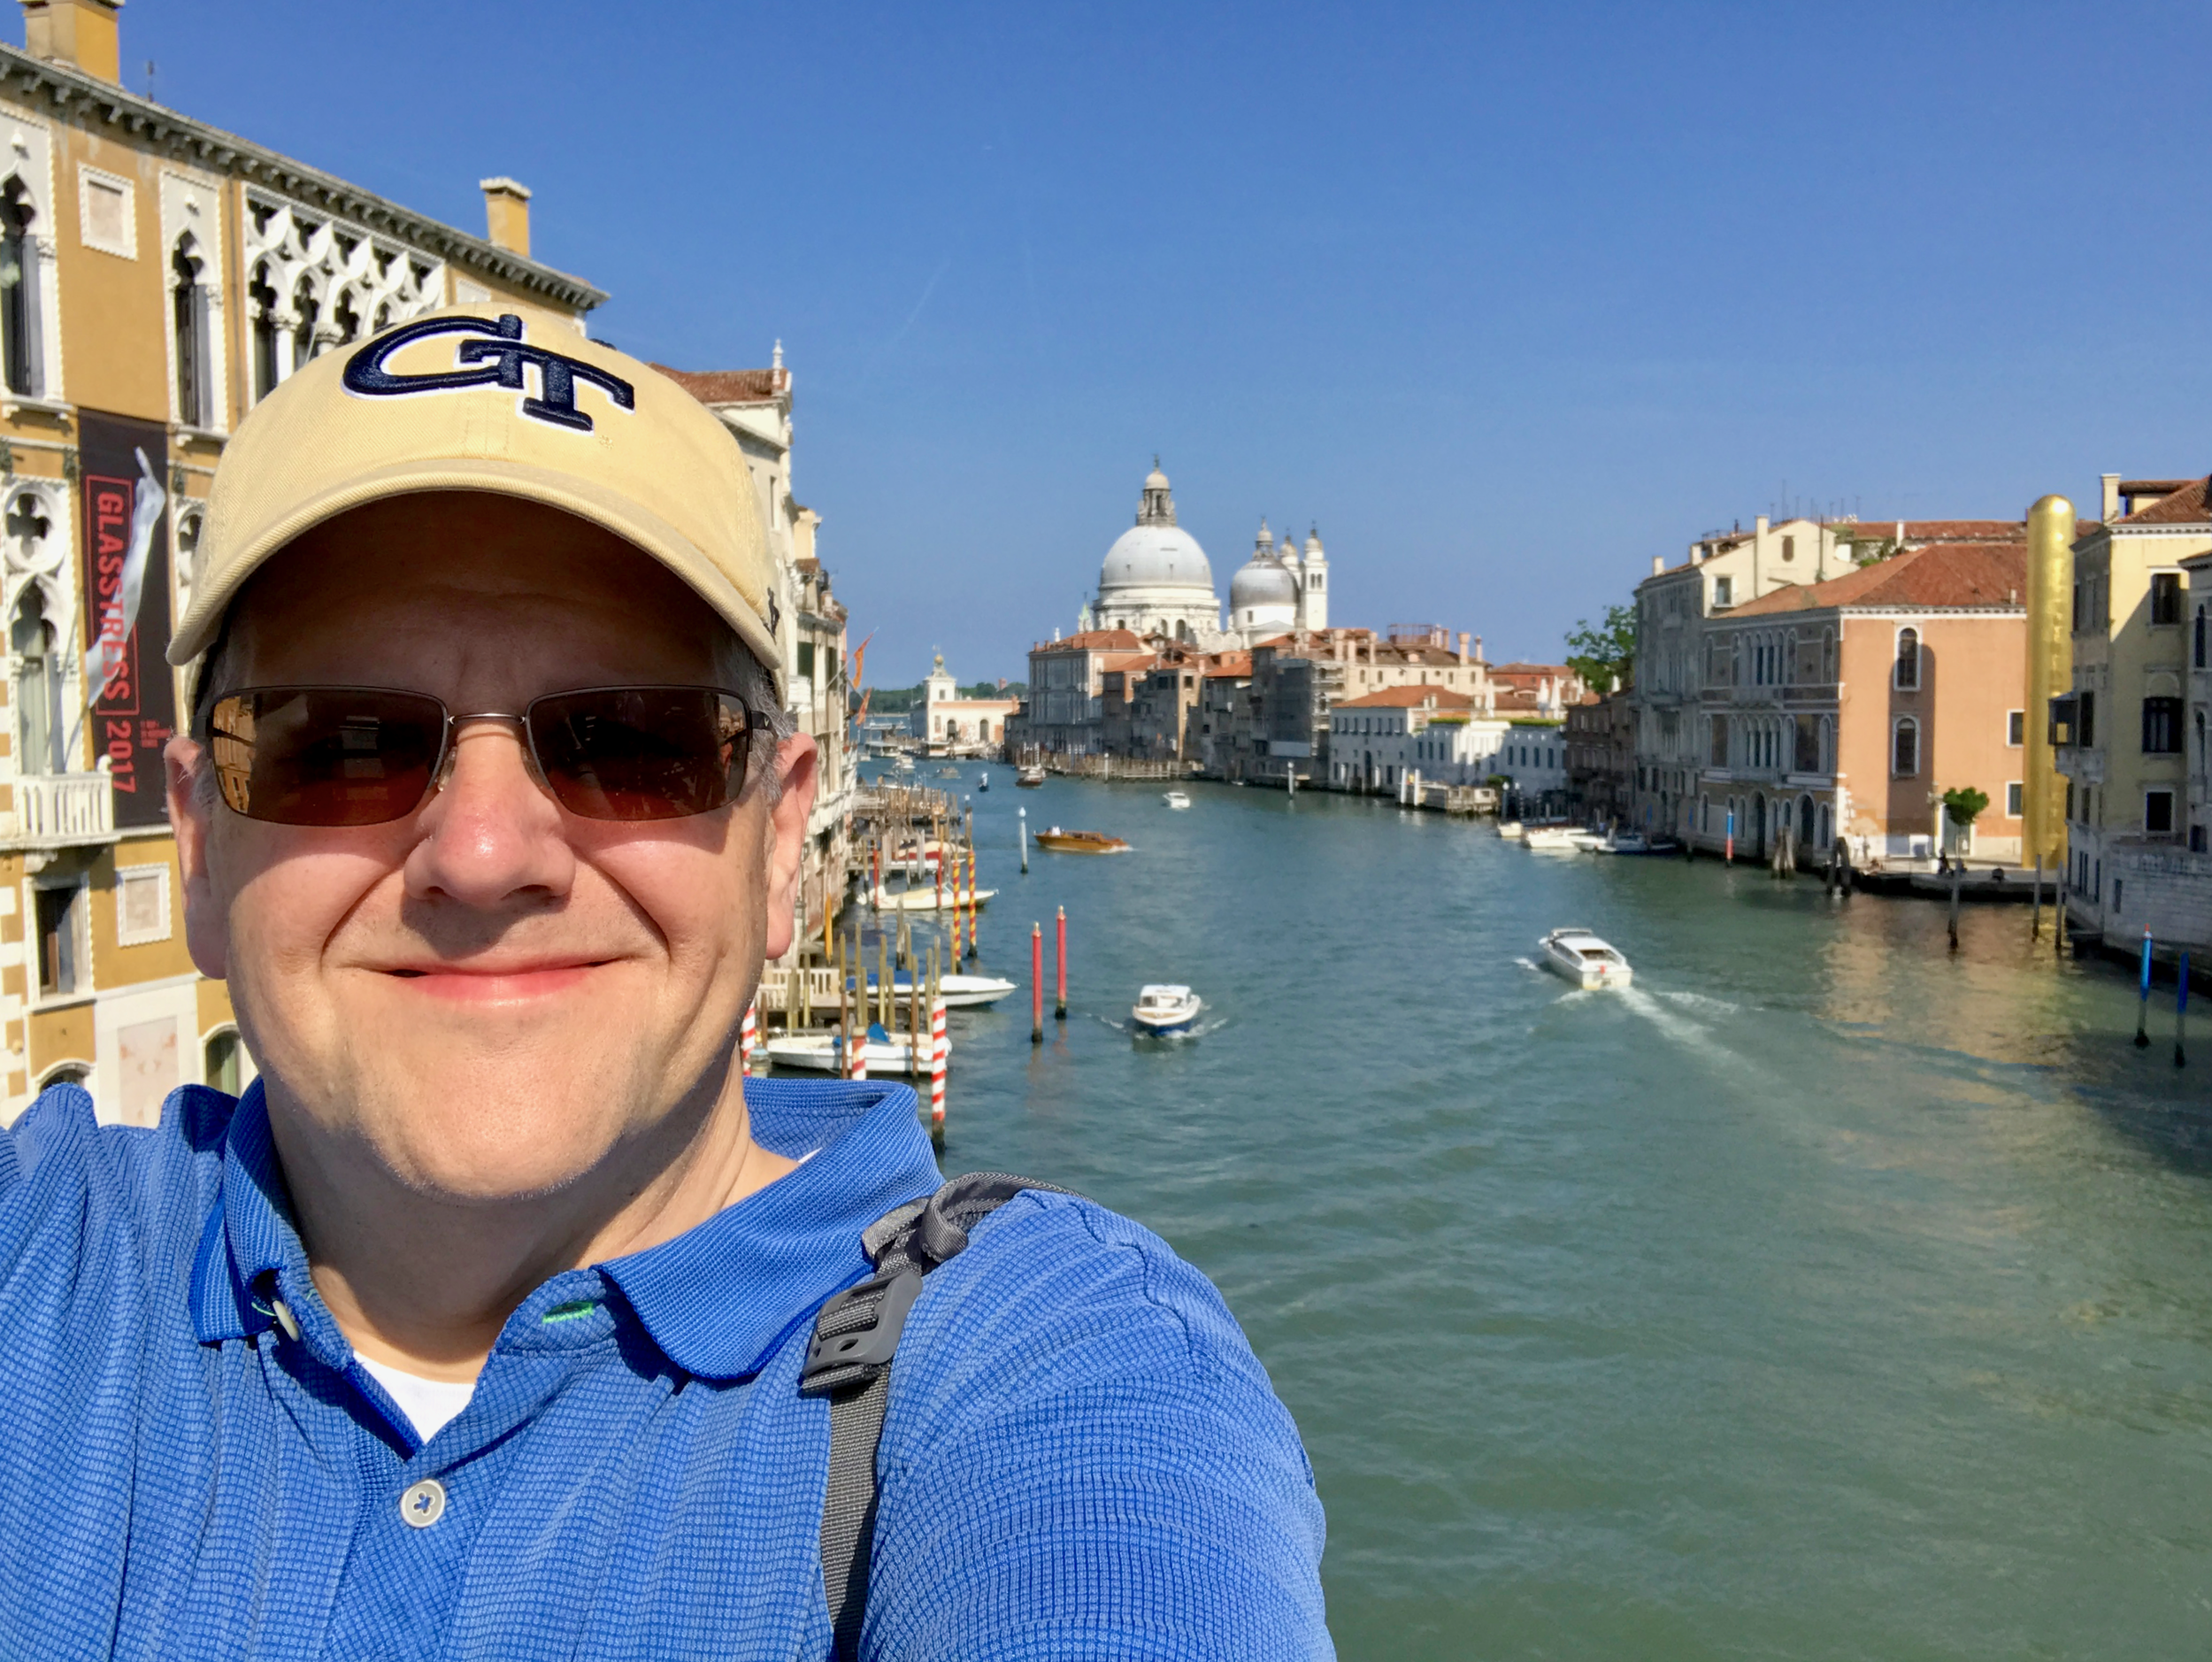 I want  Debrian Travels  to help my readers have the same rich experiences I have had in places like Venice without breaking the bank